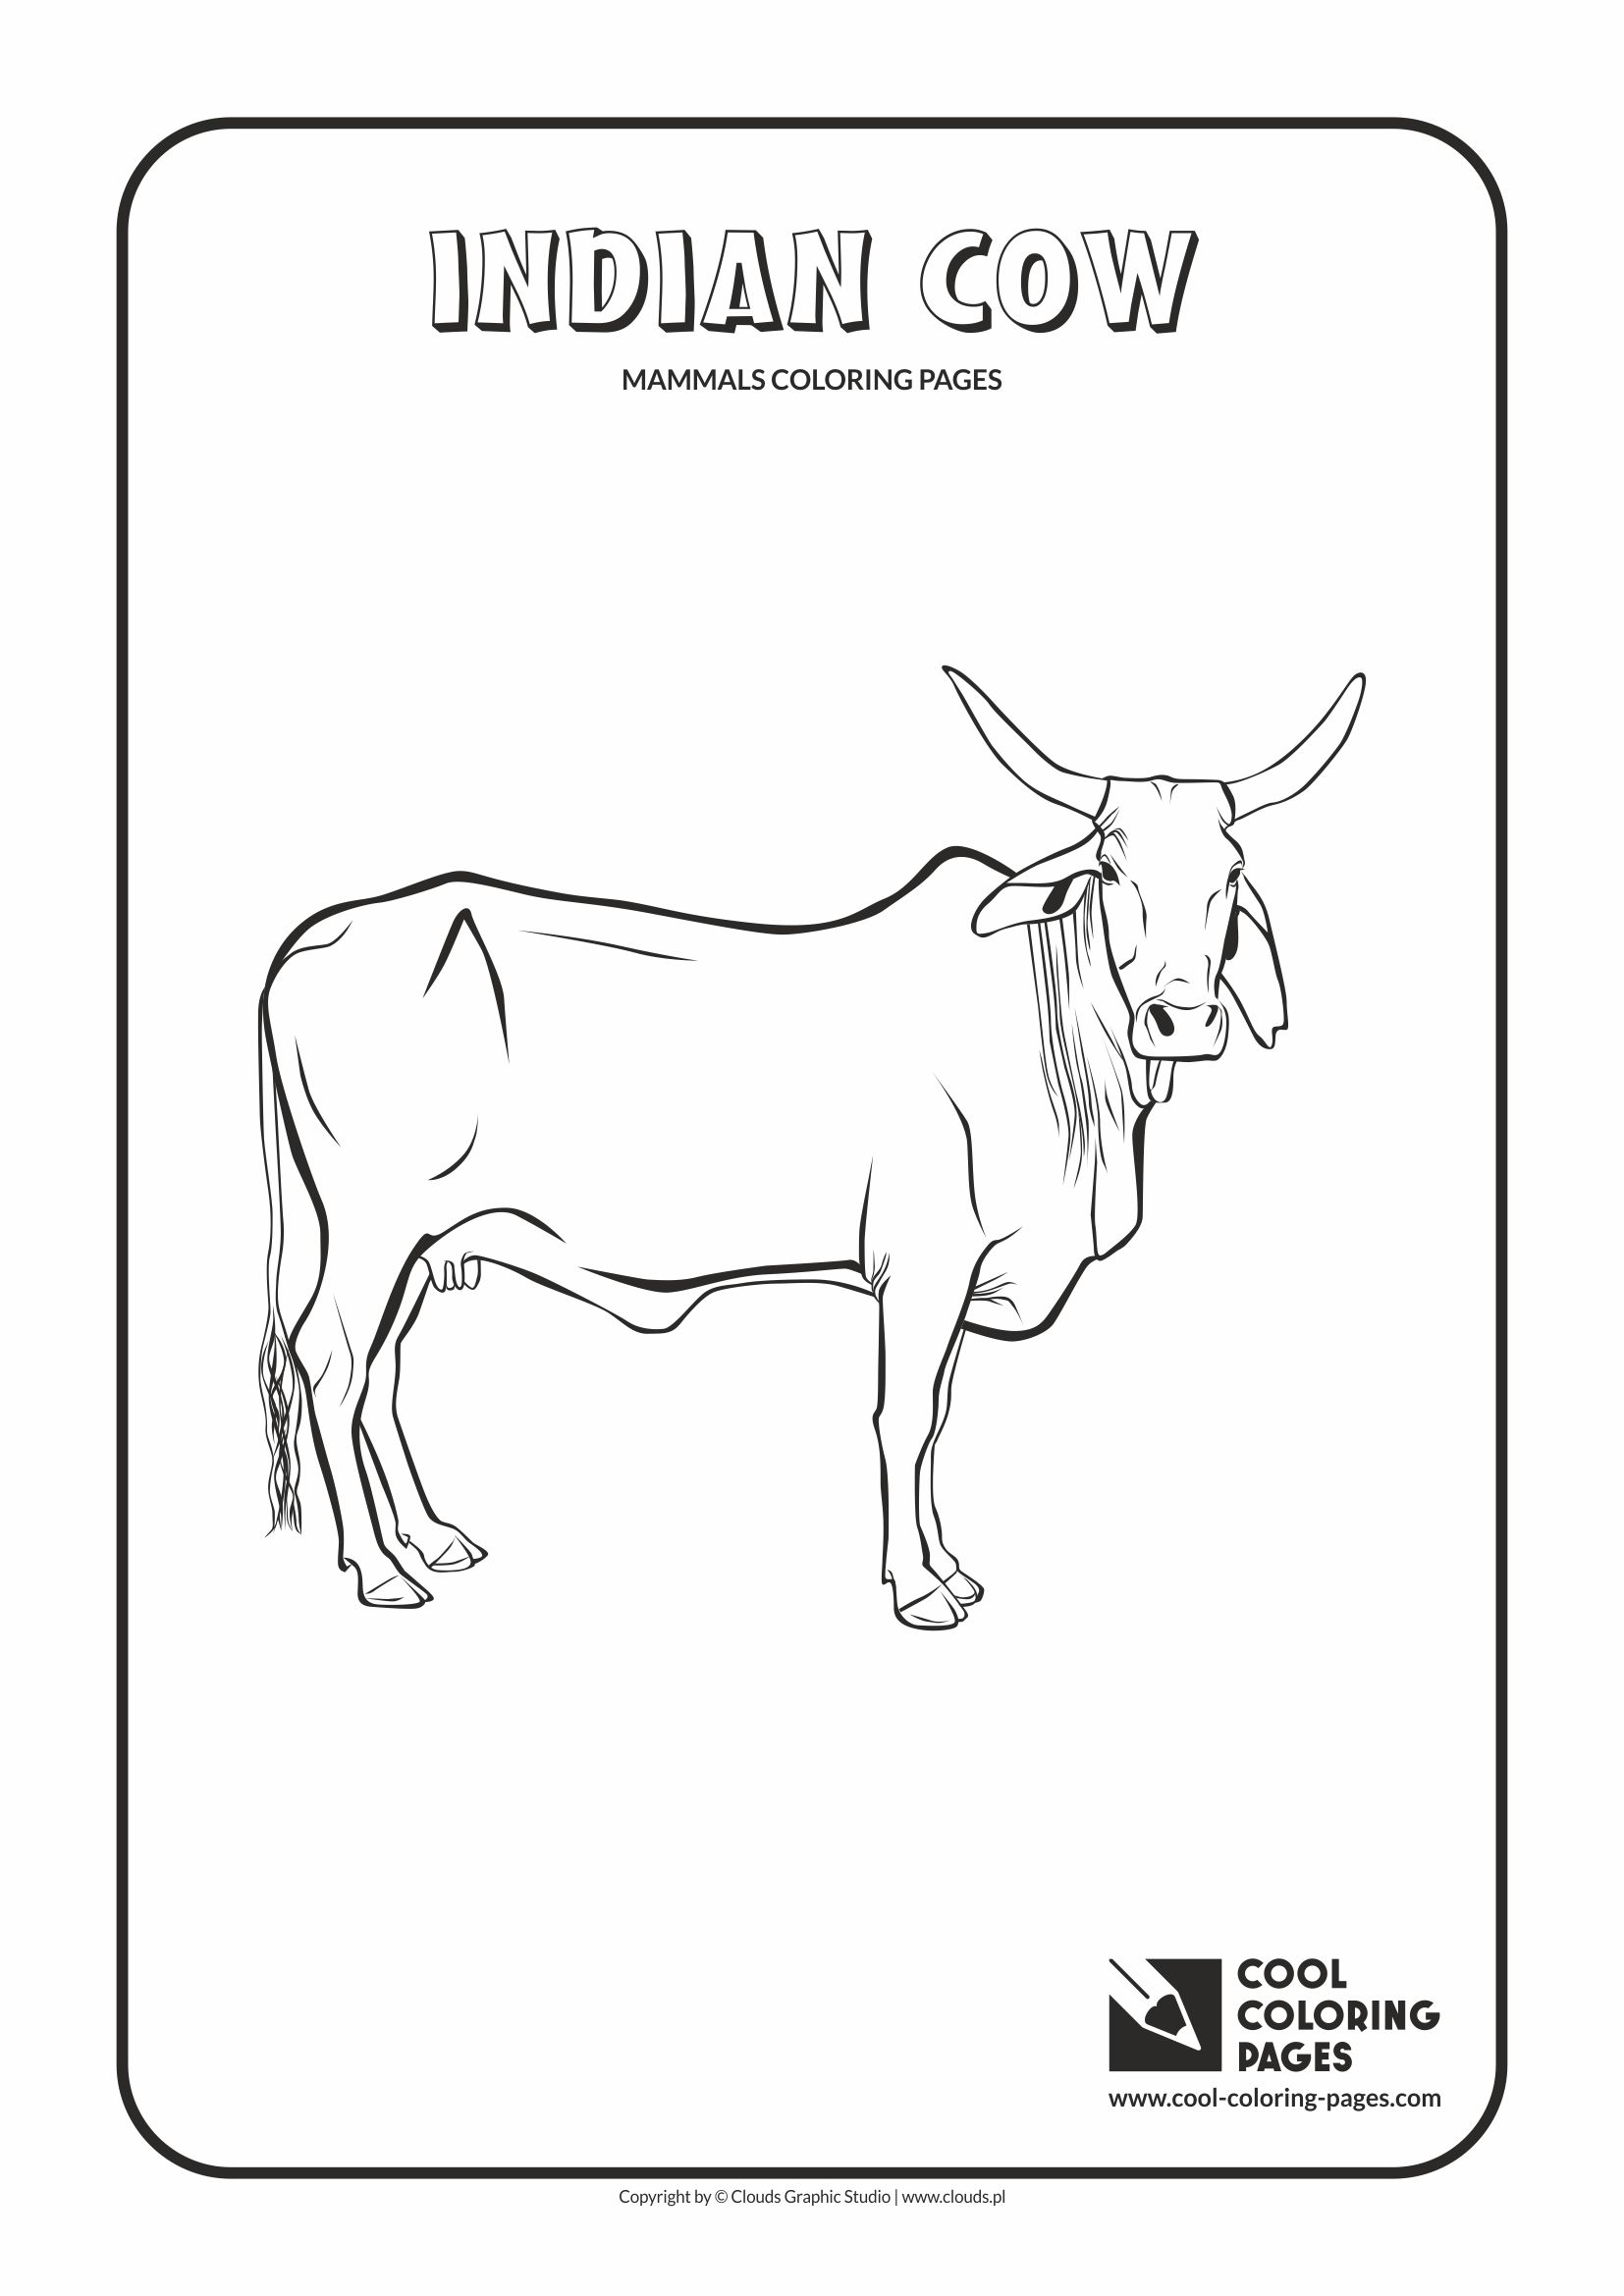 Cool Coloring Pages Indian cow